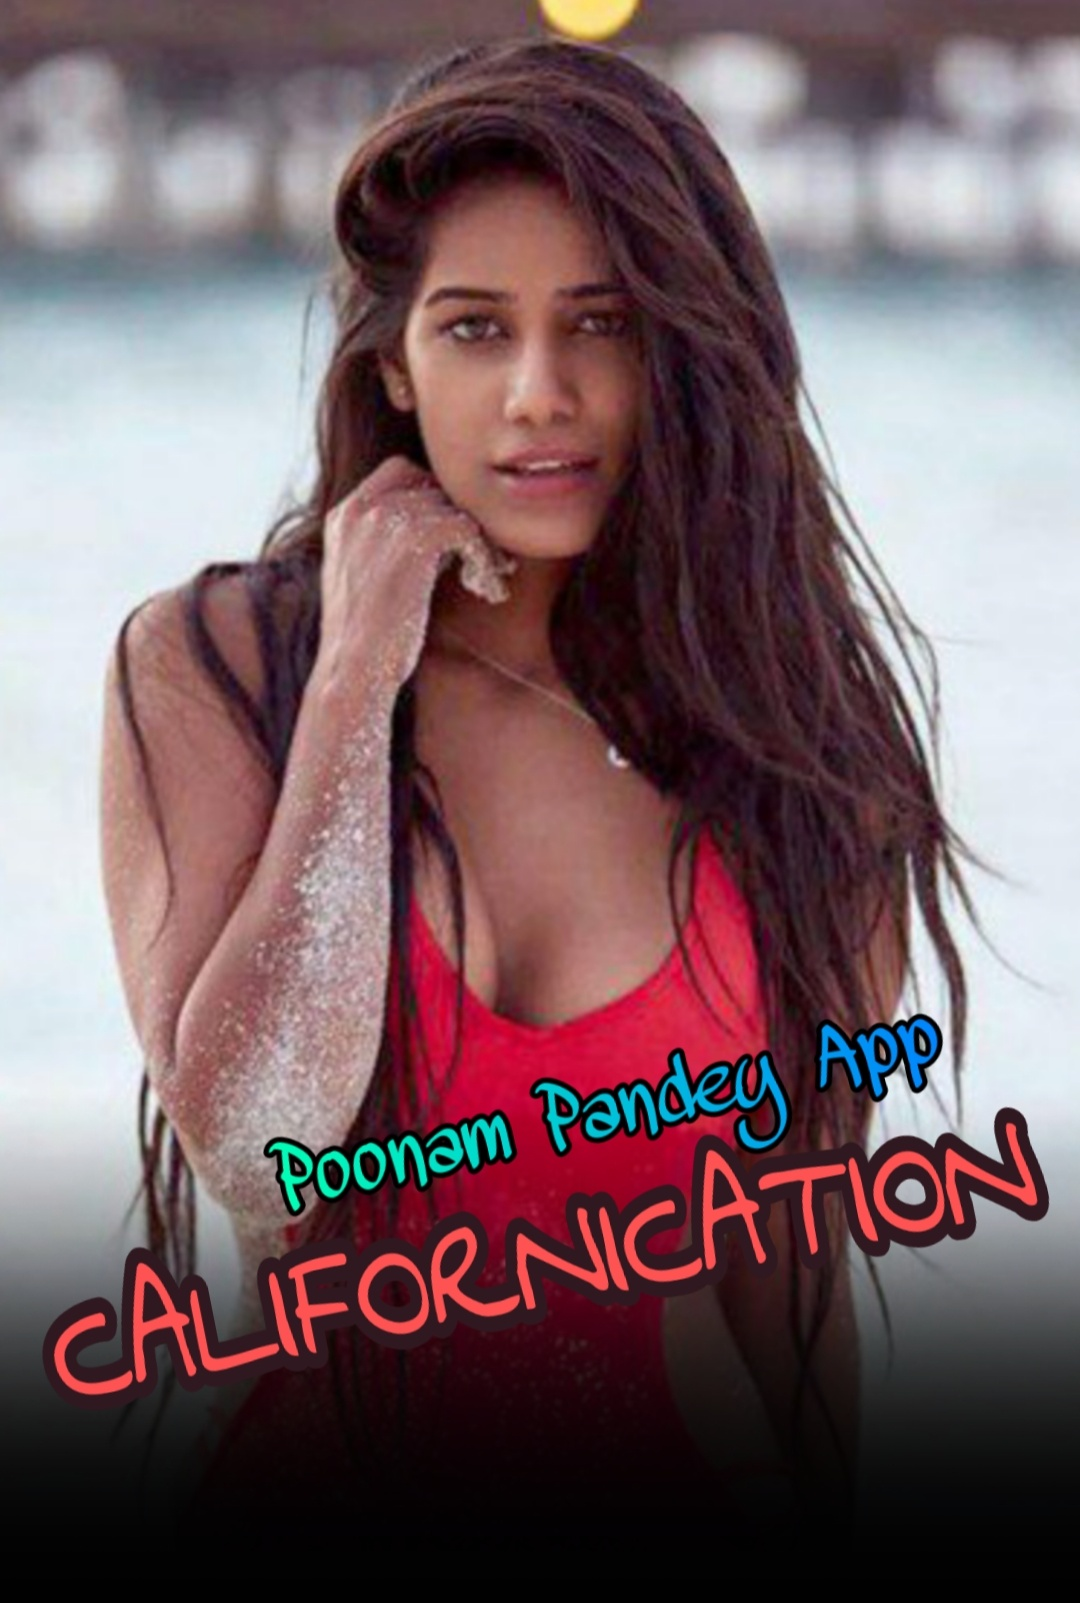 Californication 2020 Hindi Poonam Pandey Video 720p HDRip 90MB Download